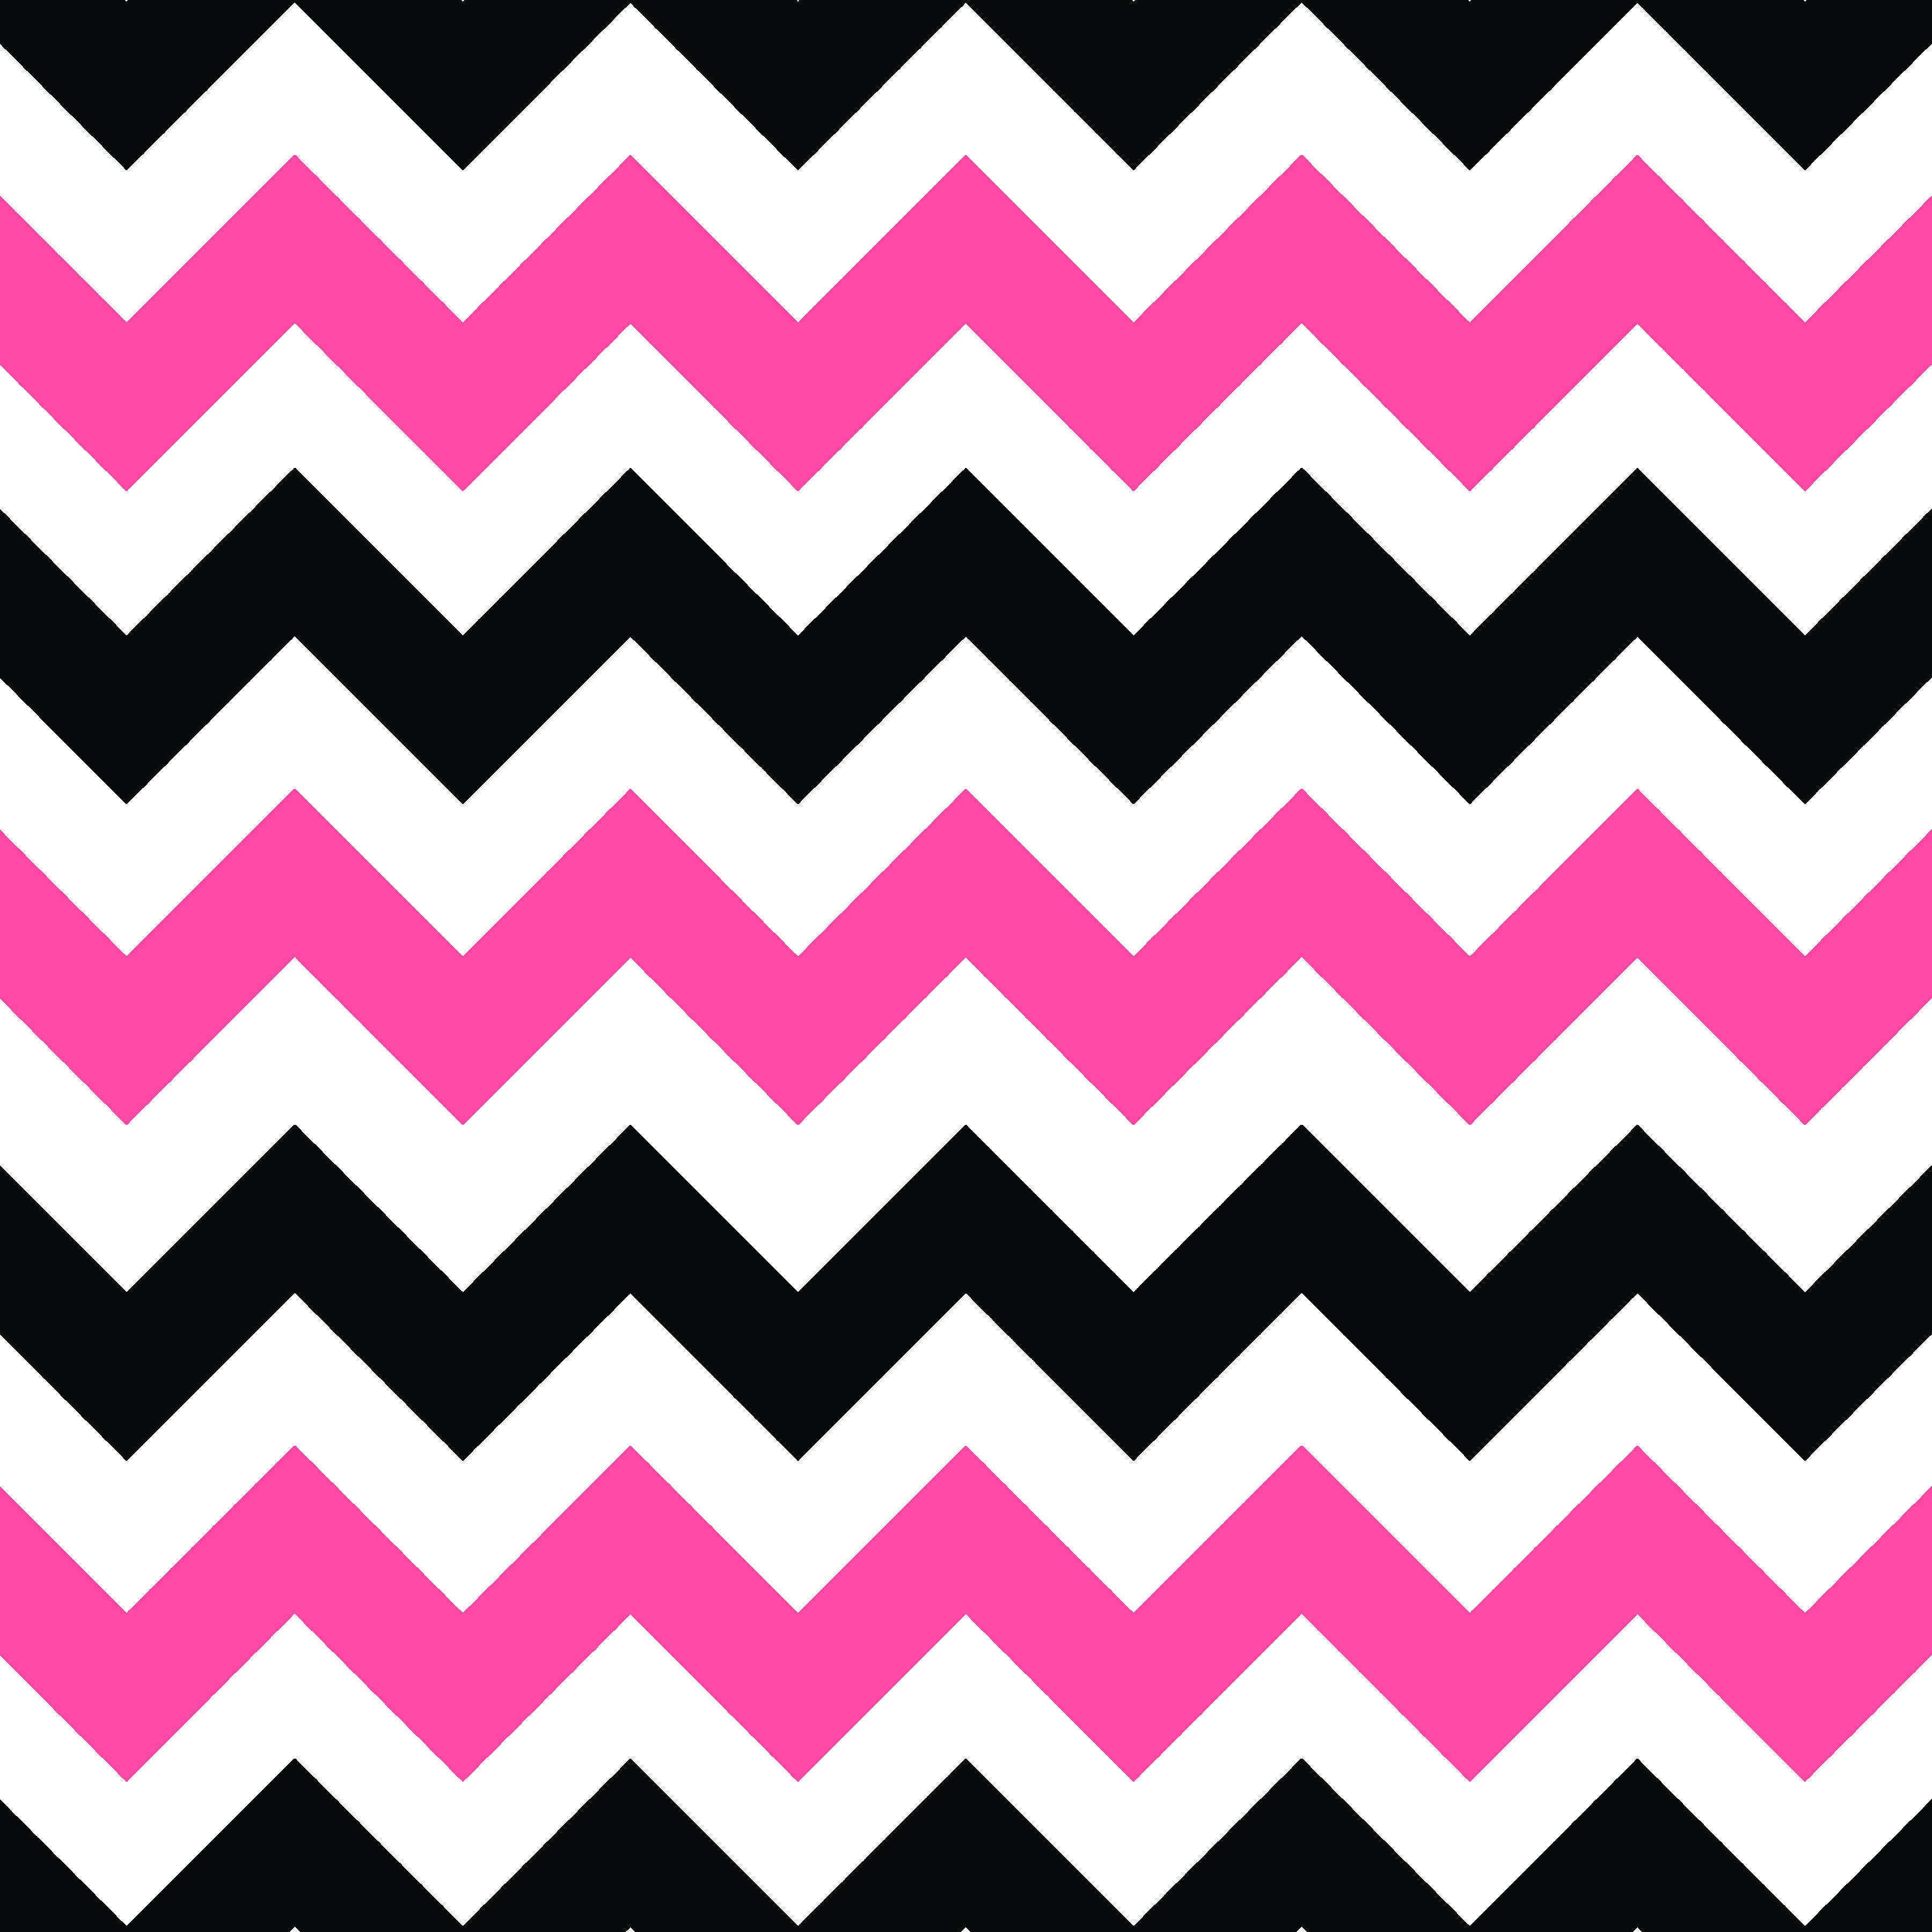 Pink Black And White Sheveron